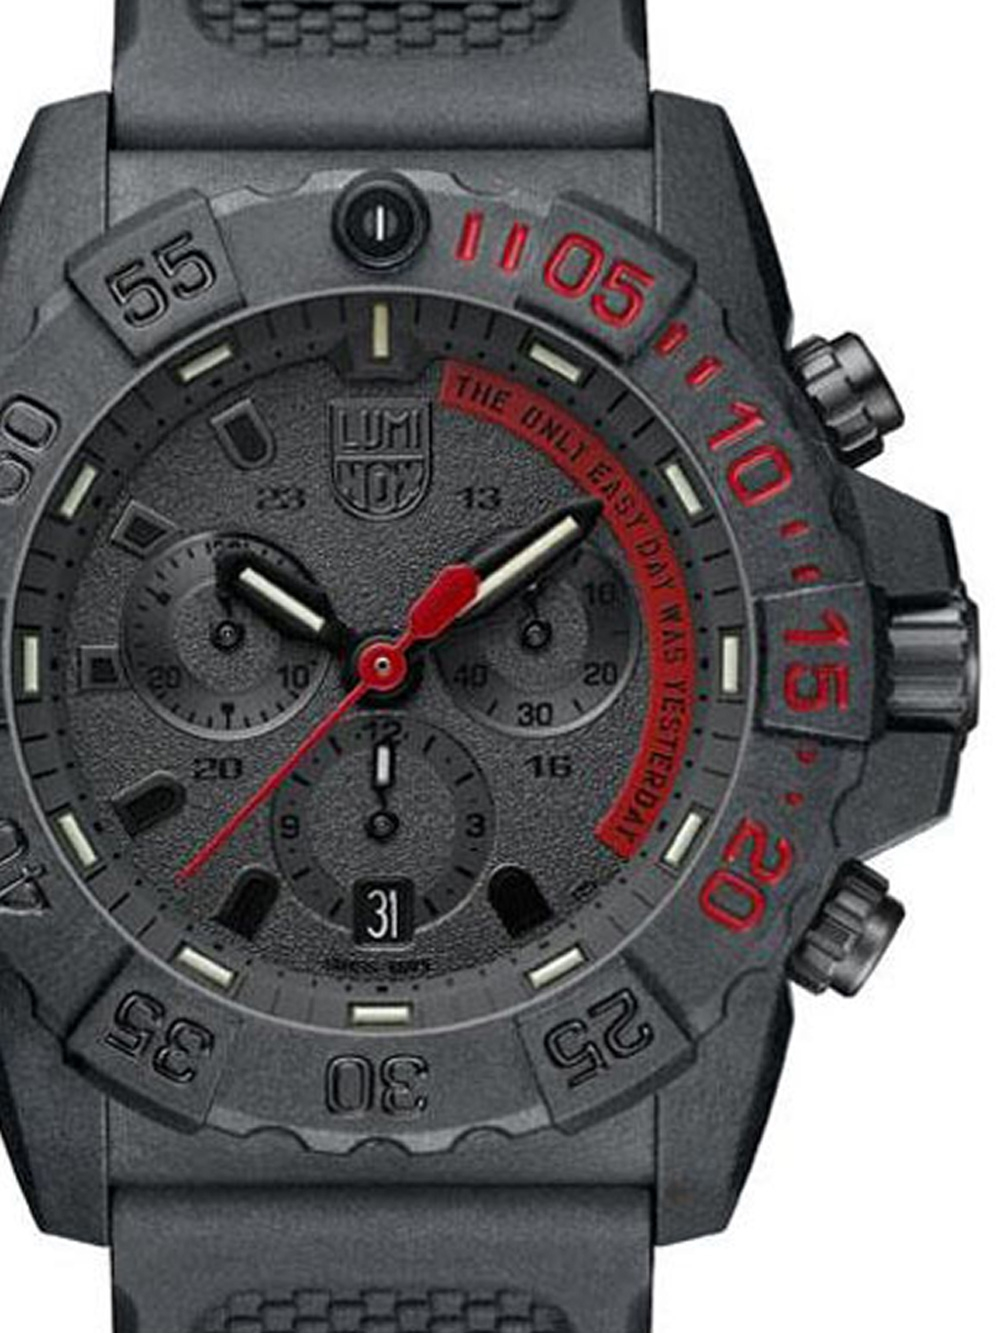 XS.3581.EY Navy Seal Chronograph 45mm 20ATM